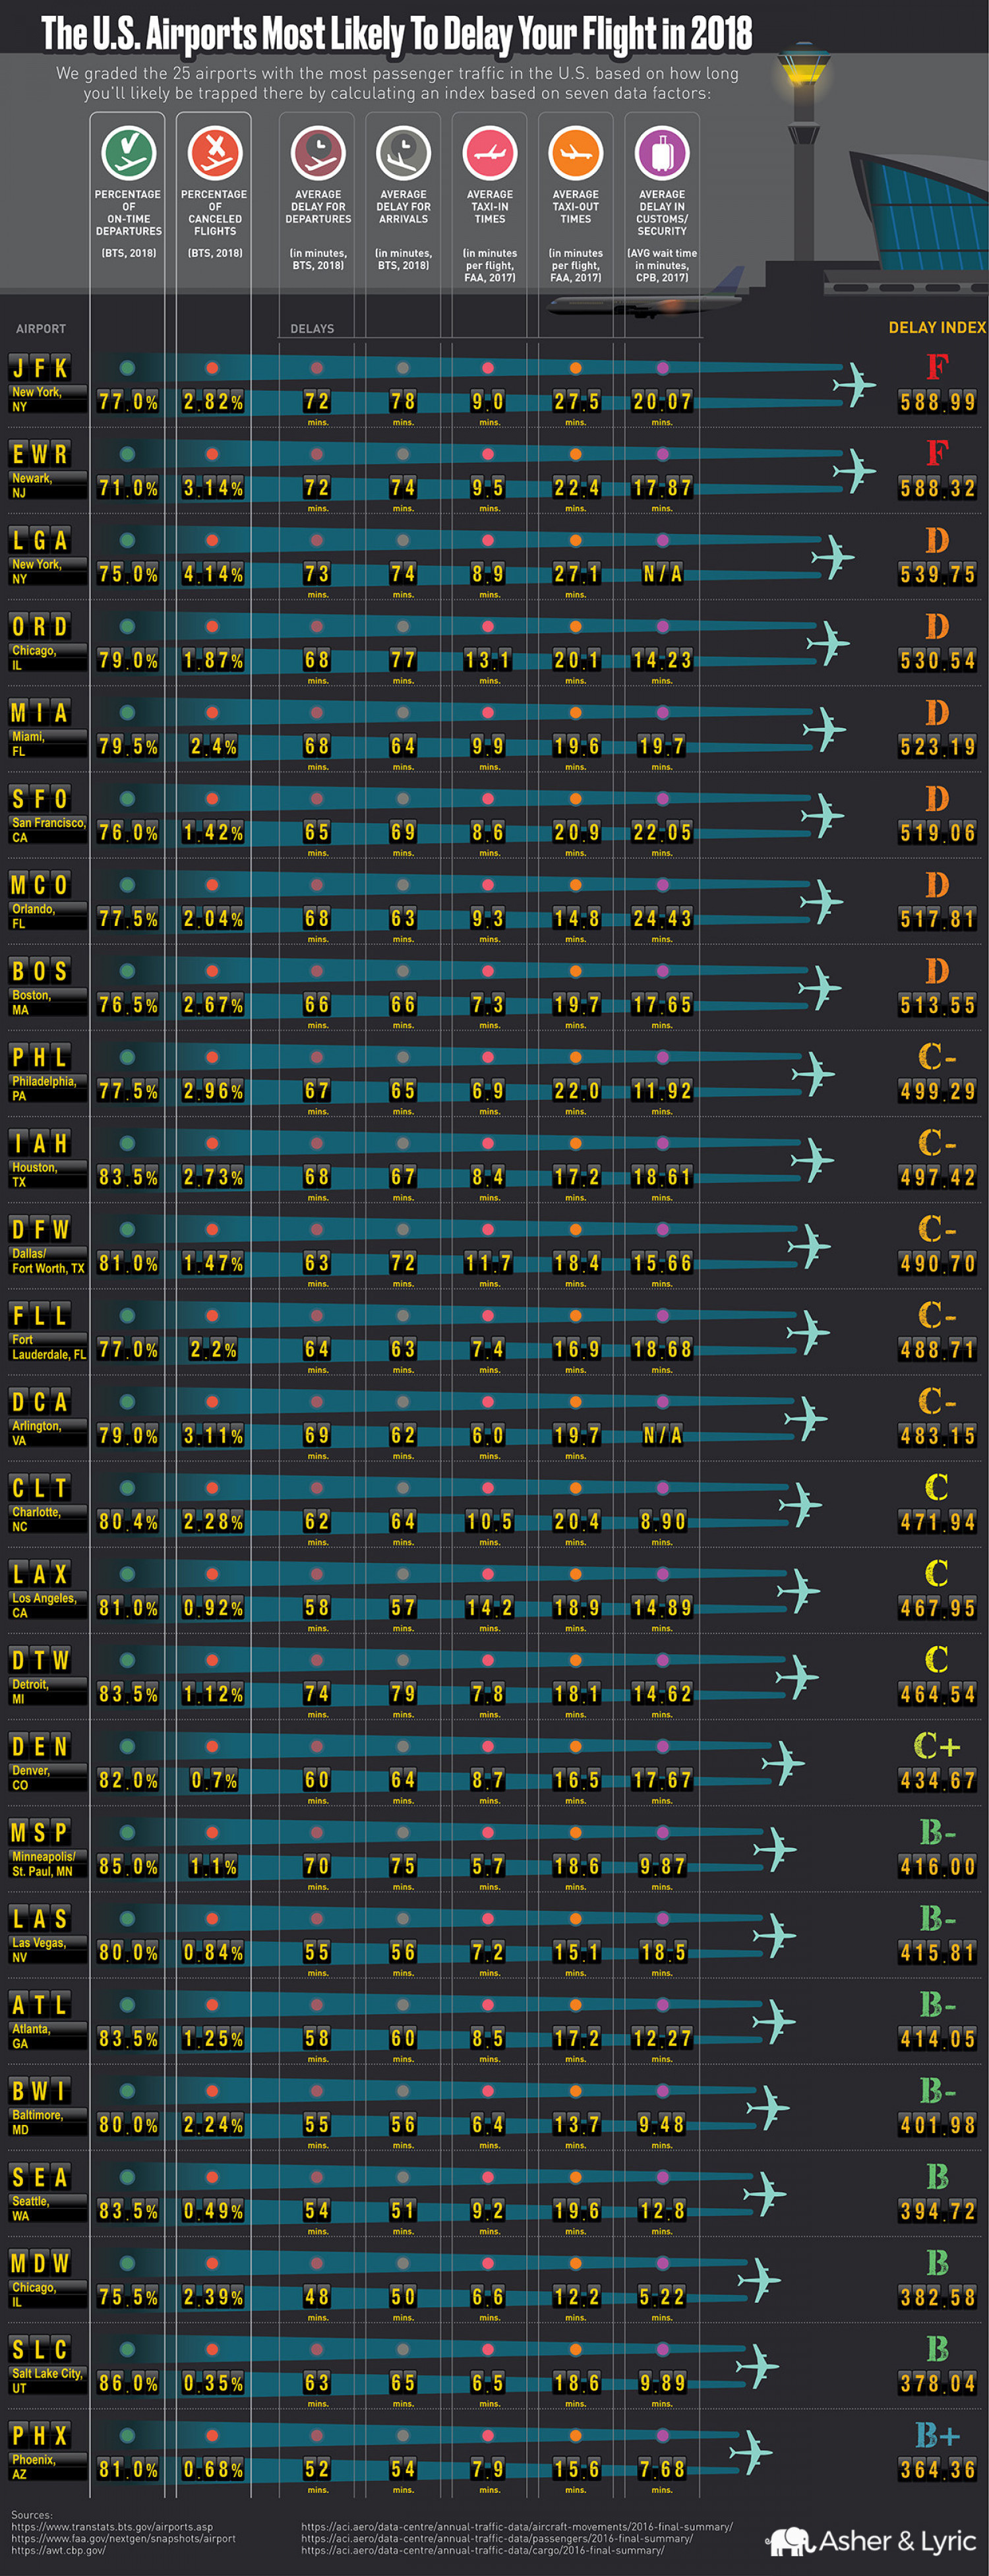 U.S. Airports Most Likely to Delay Your Flight in 2018 Infographic